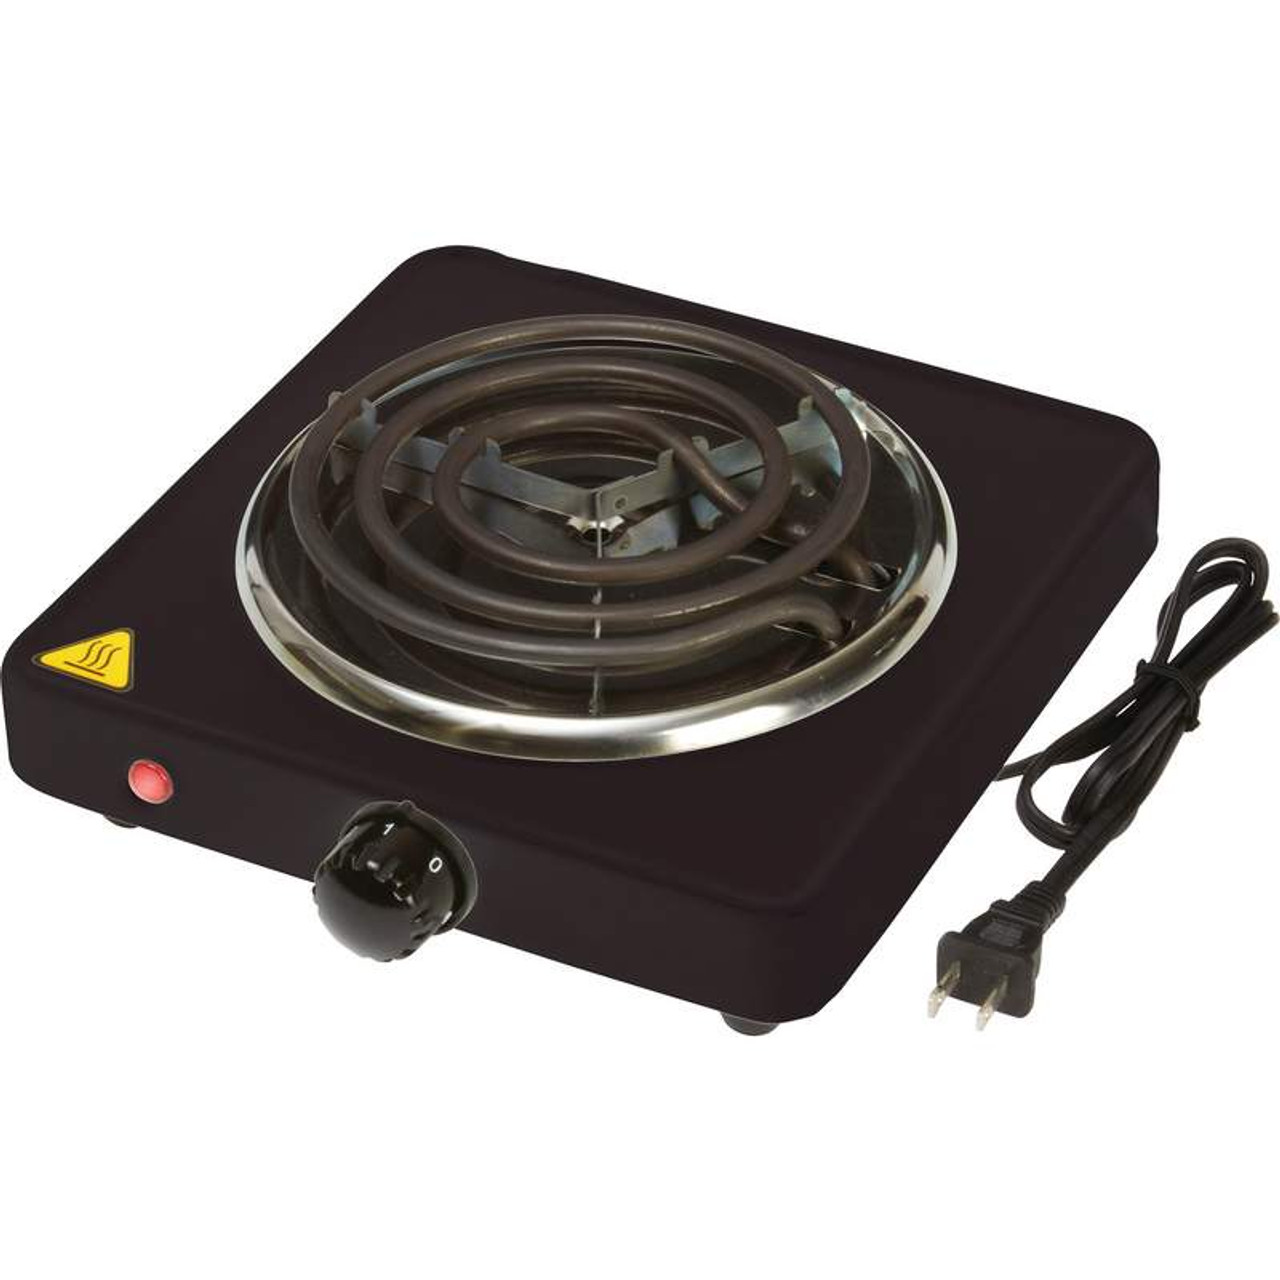 Maxam® Single Burner Hotplate